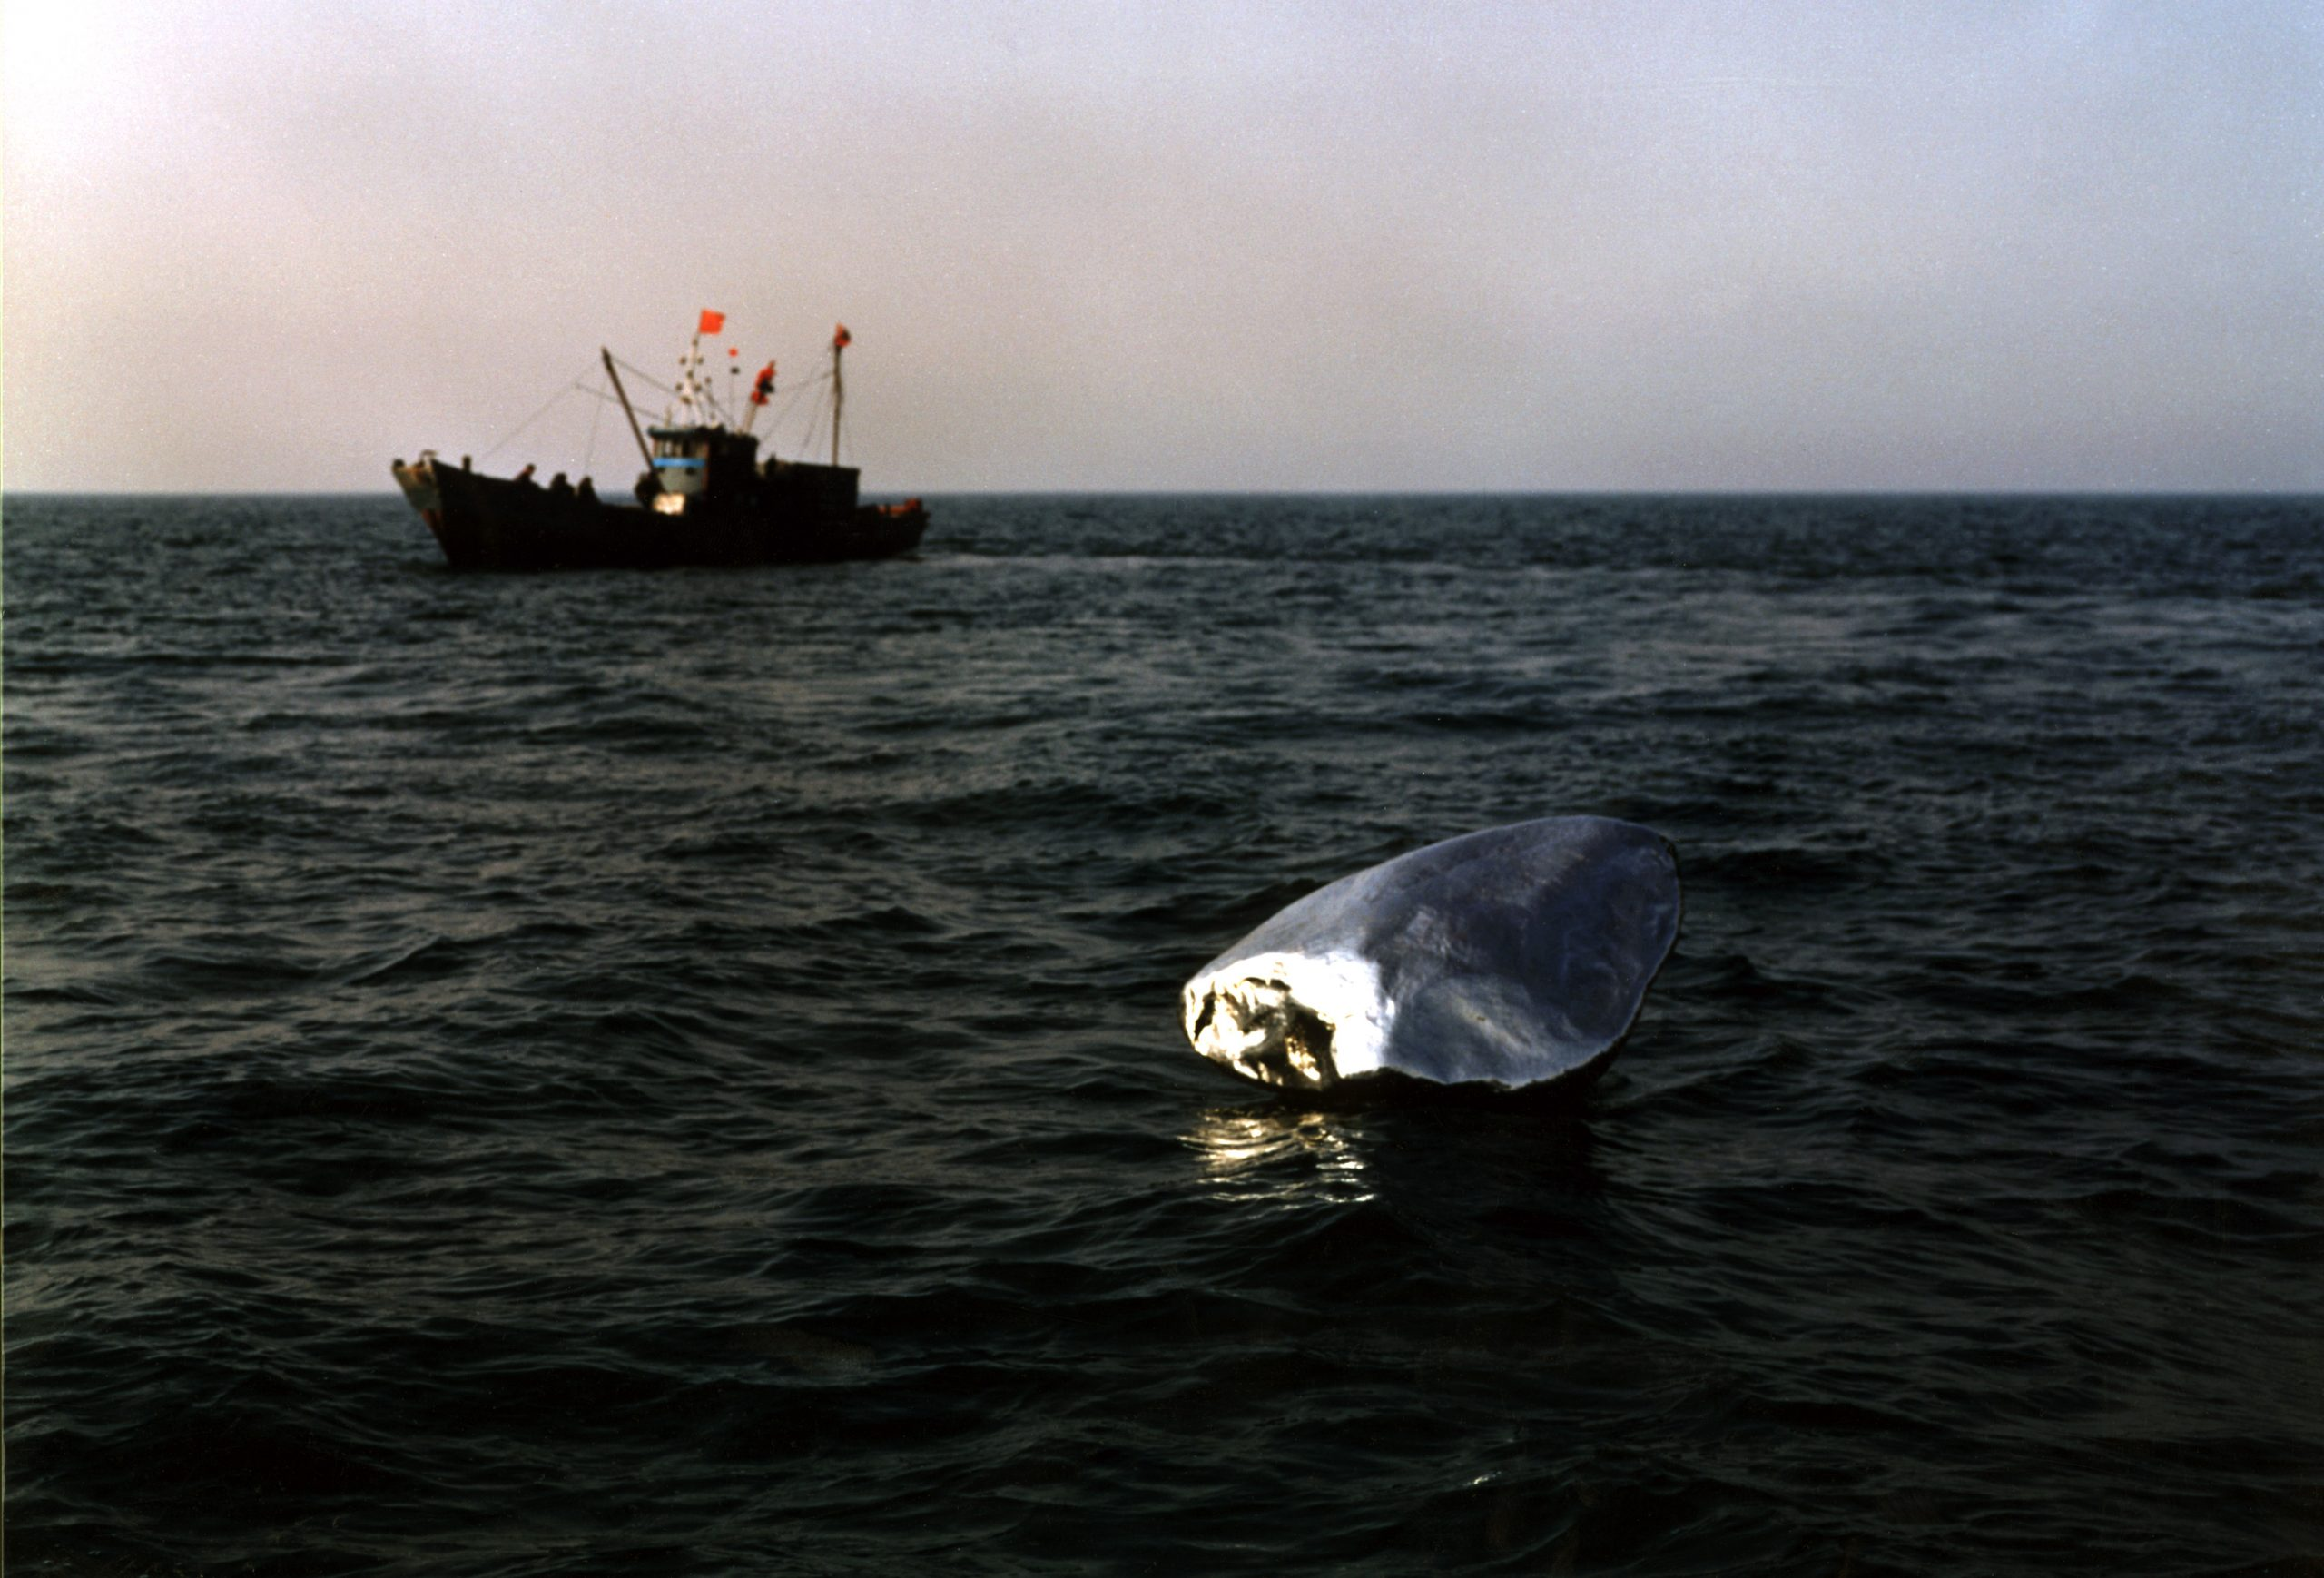 A shiny silver object floating in the water with a fishing boat in the background.